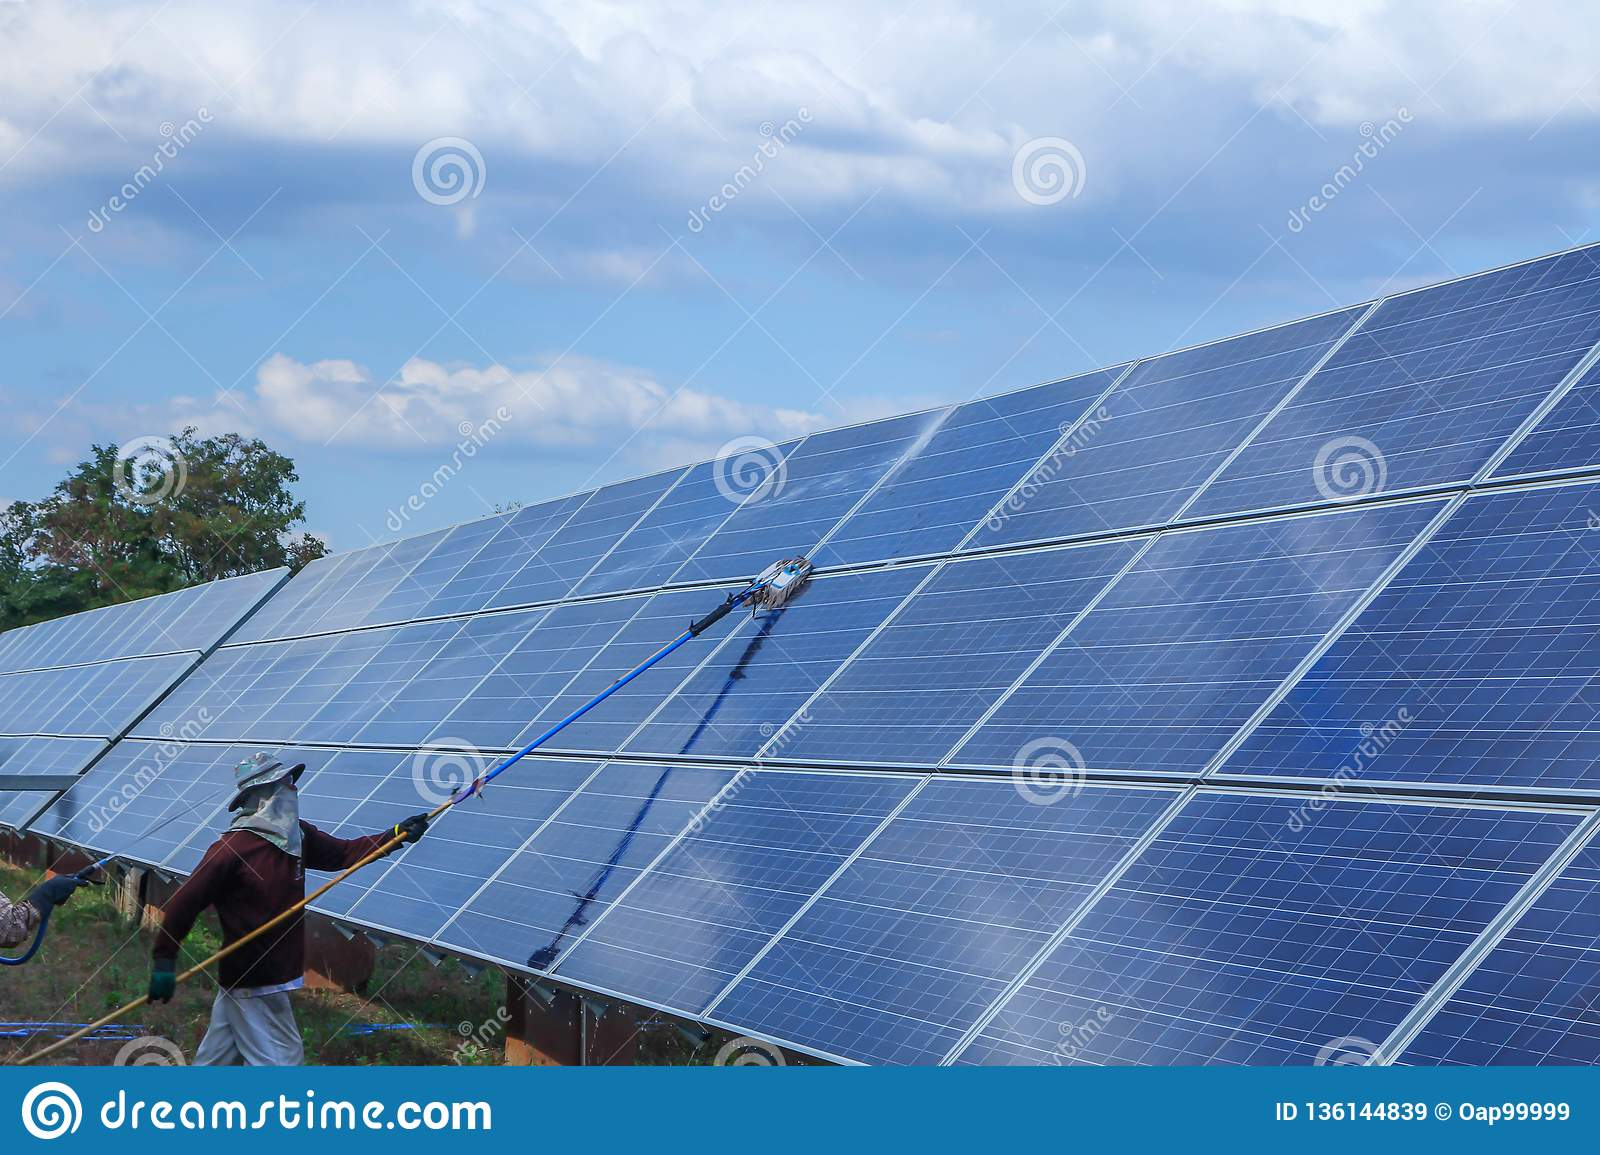 Solar panel, alternative electricity source - concept of sustainable resources, This`s the sun tracking systems, Cleaning will